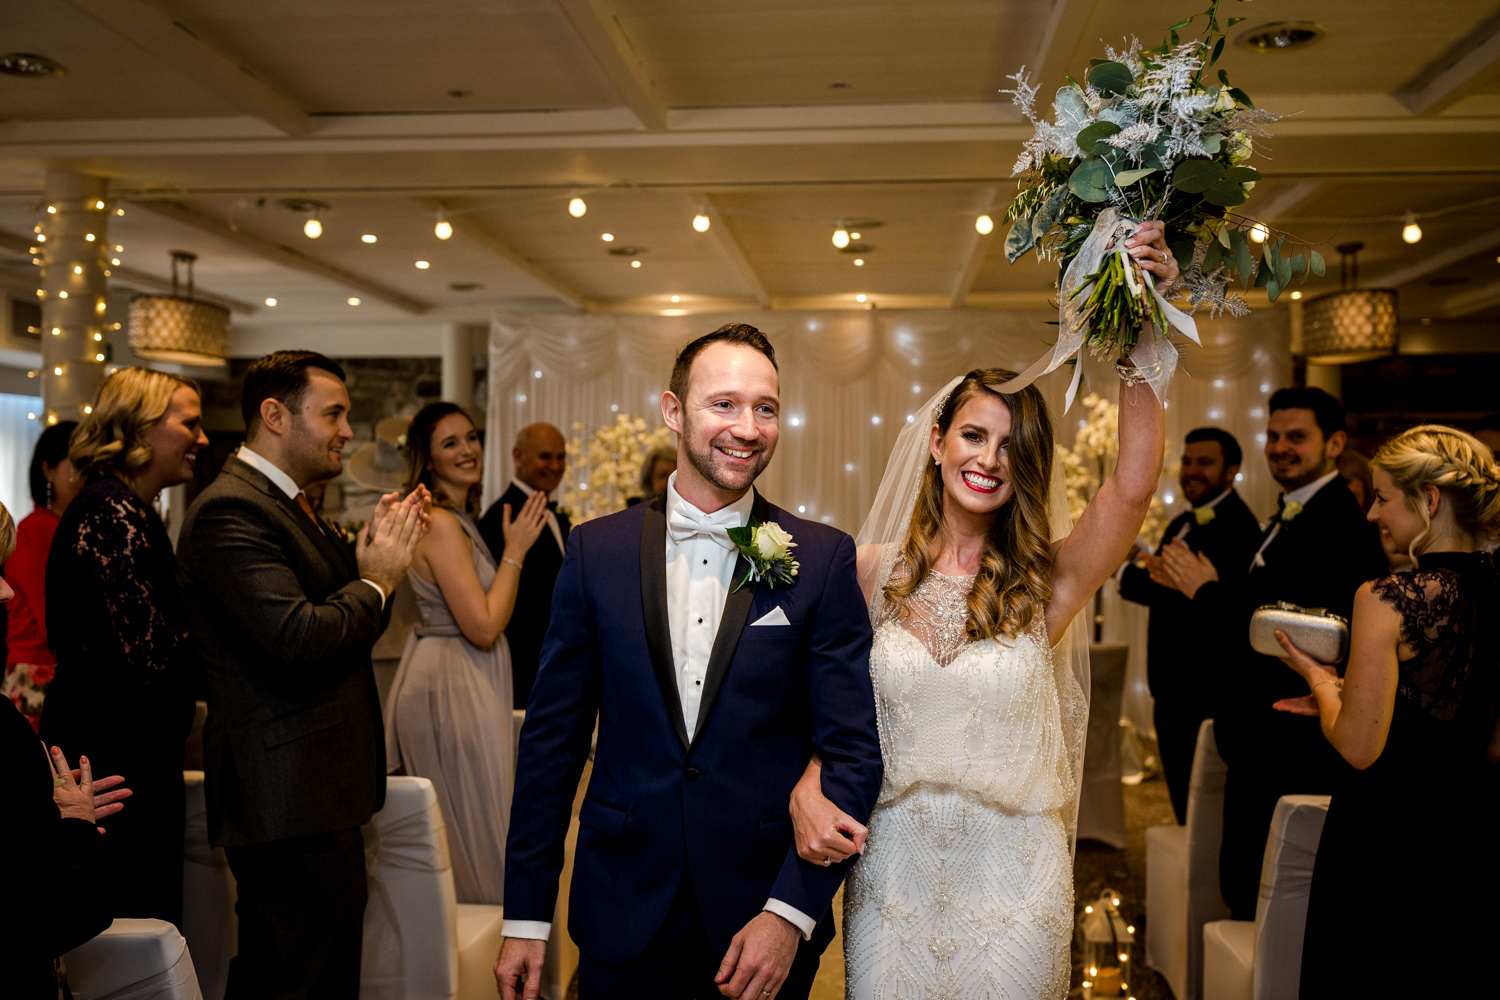 The happy bride during a winter wedding at Stanley House